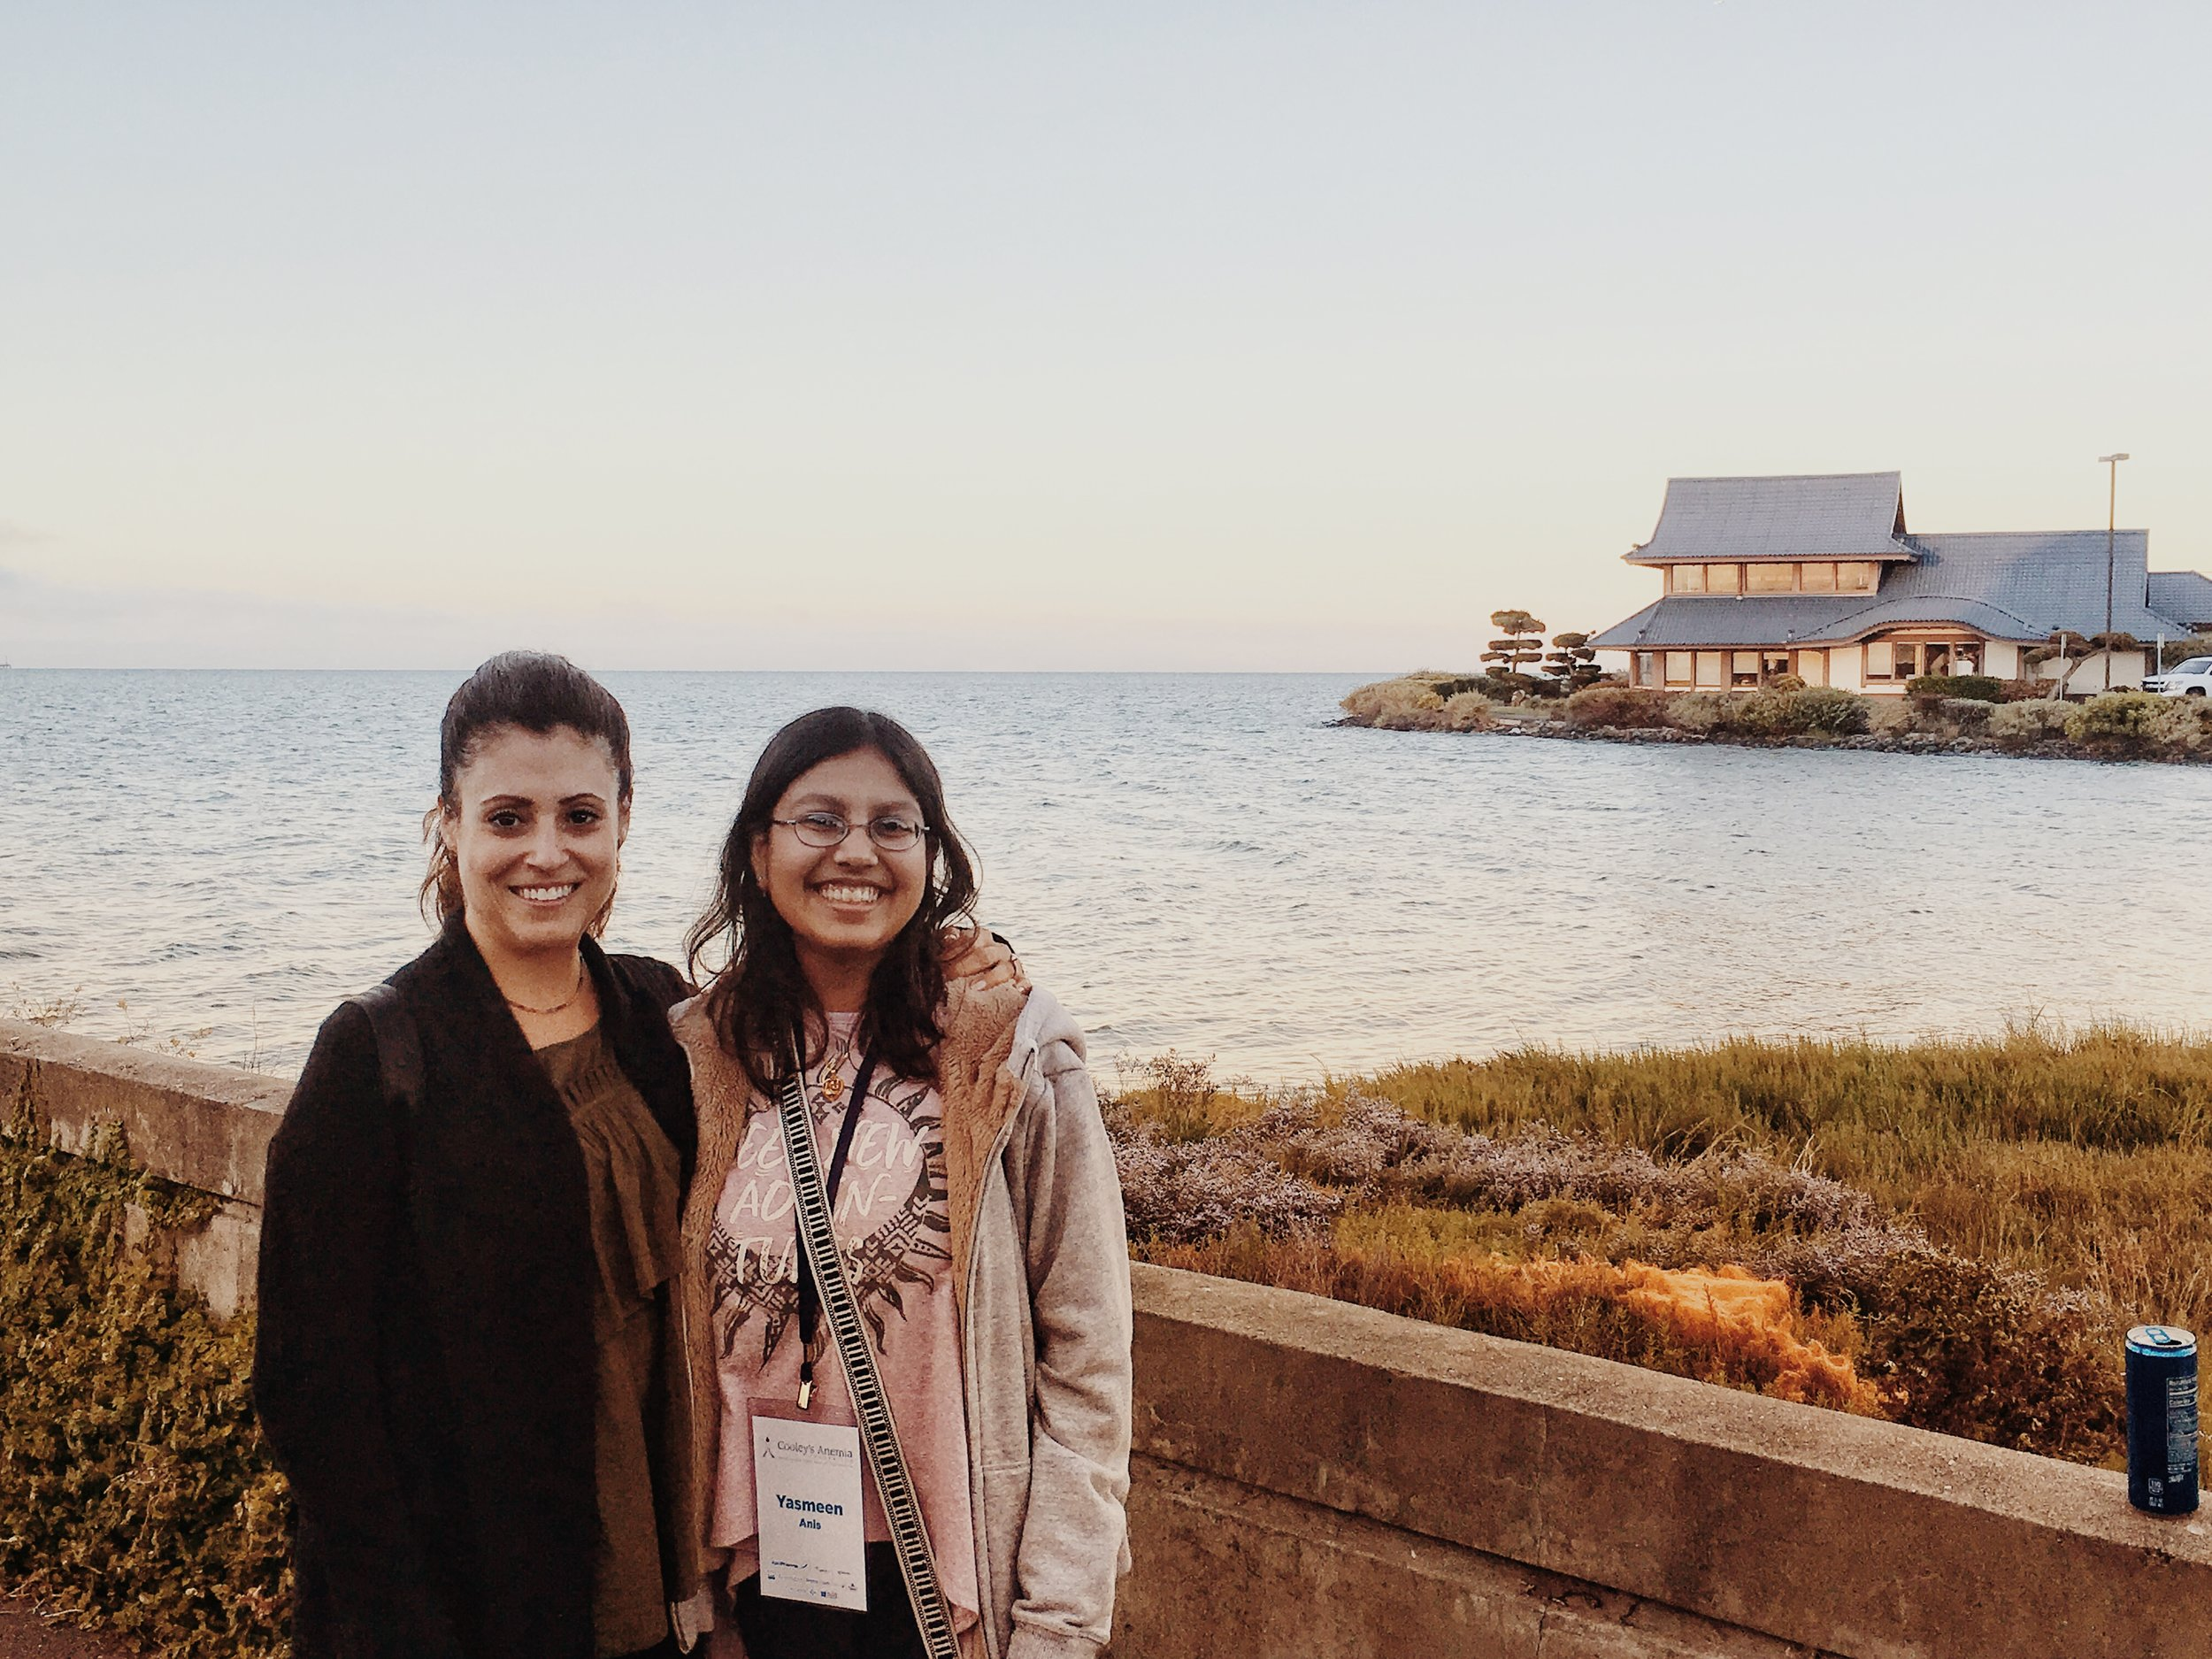 Here I am with the vibrant little miss Yasmeen. It was cold in San Francisco!